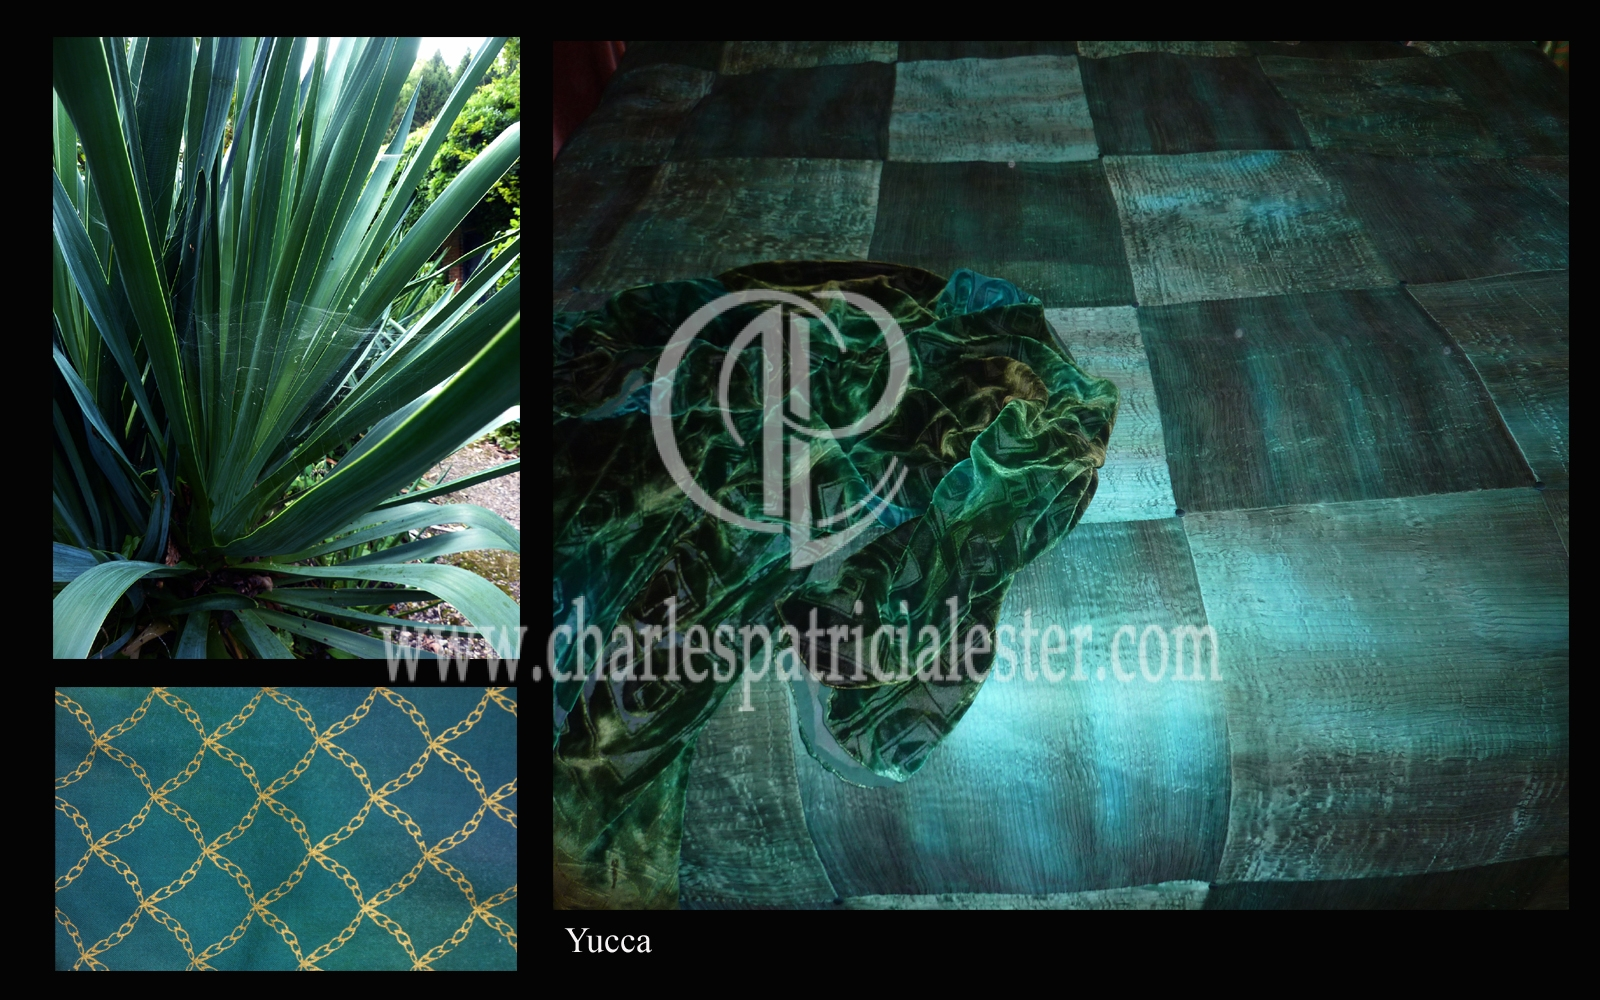 Yucca inspiration for colour and texture for luxury sensual home